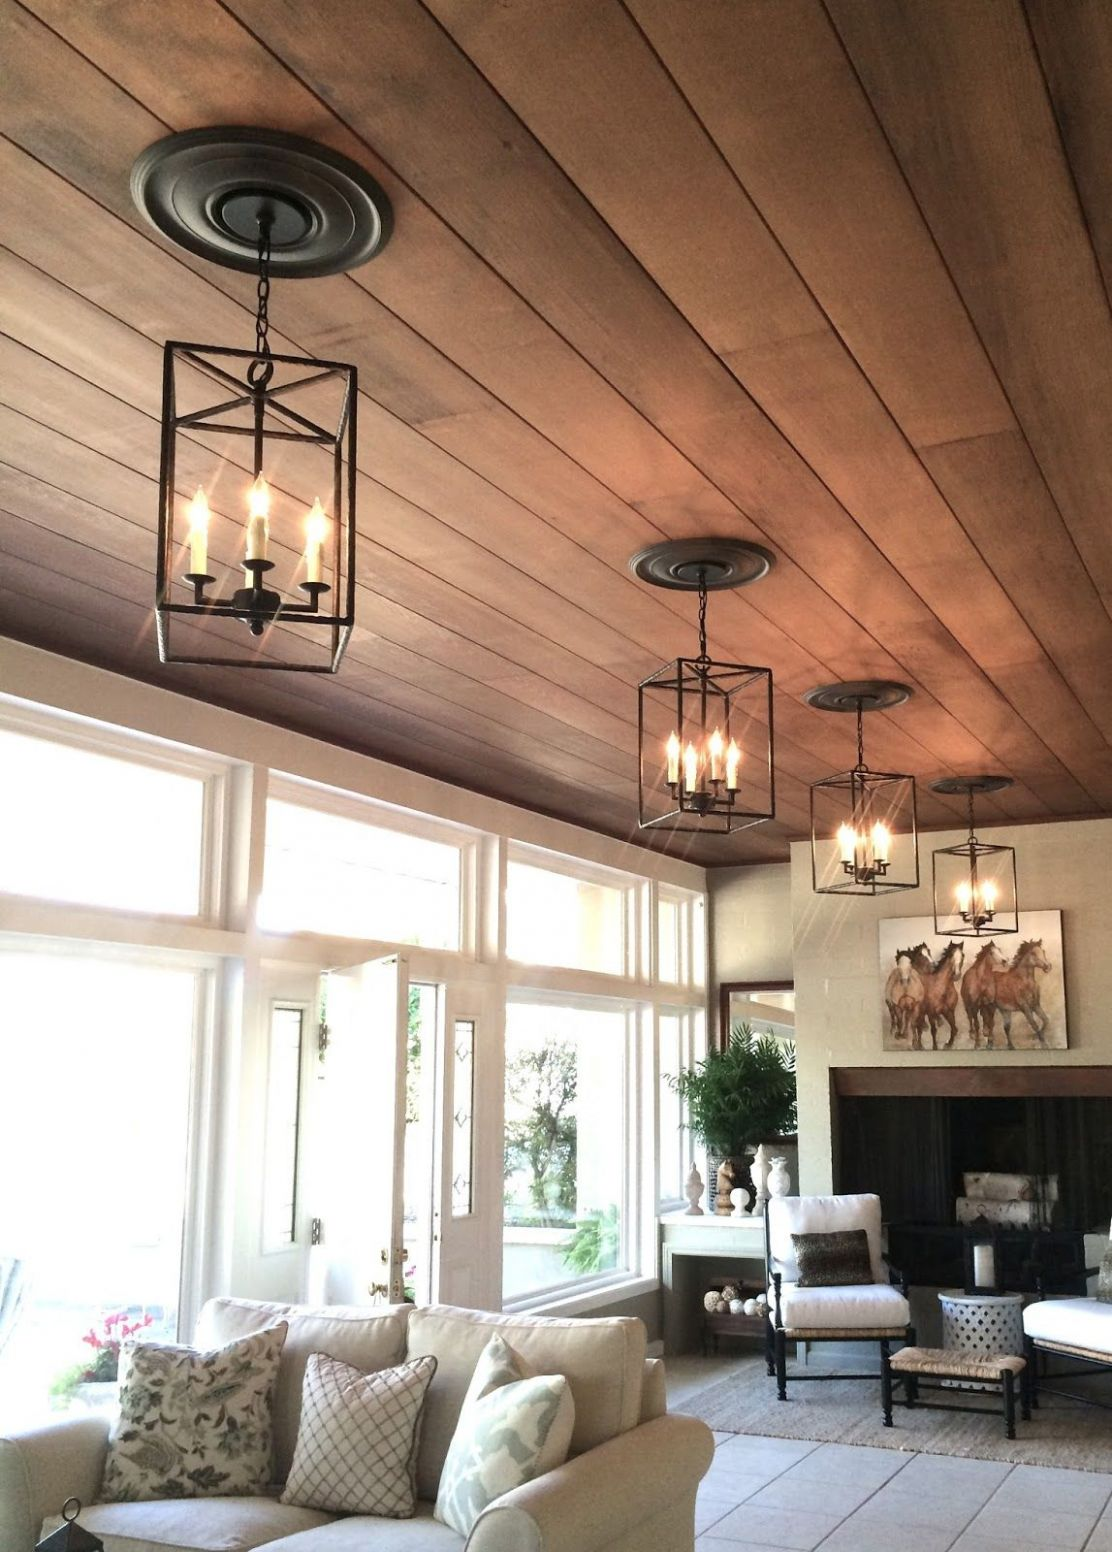 Ranch House Living Room Before and After (With images) | Ceiling ..